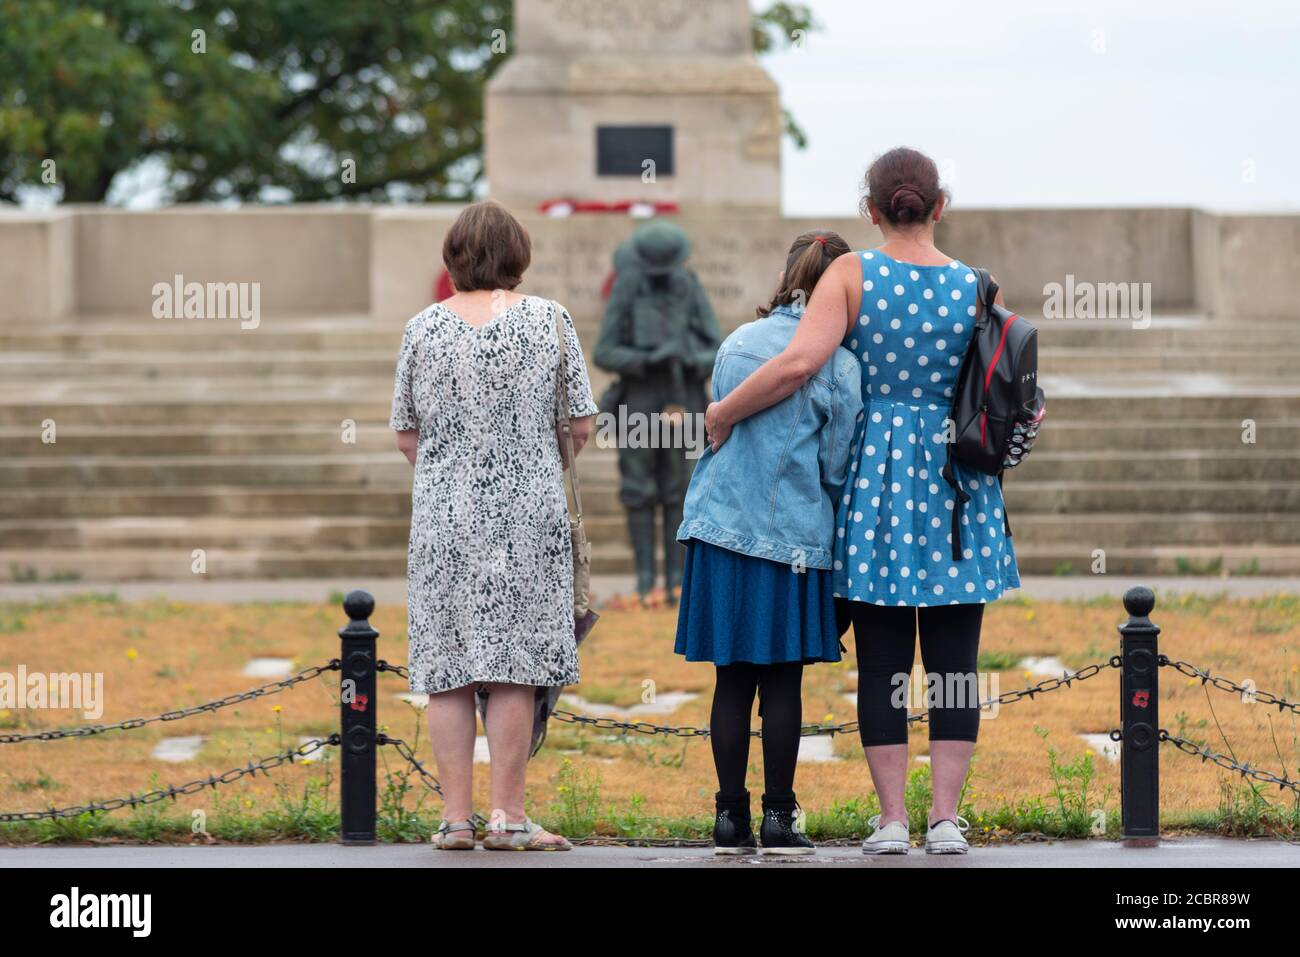 southend-on-sea-essex-uk-15th-aug-2020-with-public-vj-day-events-being-cancelled-due-to-the-covid-19-coronavirus-guidelines-a-few-people-visited-the-southend-cenotaph-to-pay-their-respects-at-11am-they-held-an-unofficial-minutes-silence-to-remember-2CBR89W.jpg